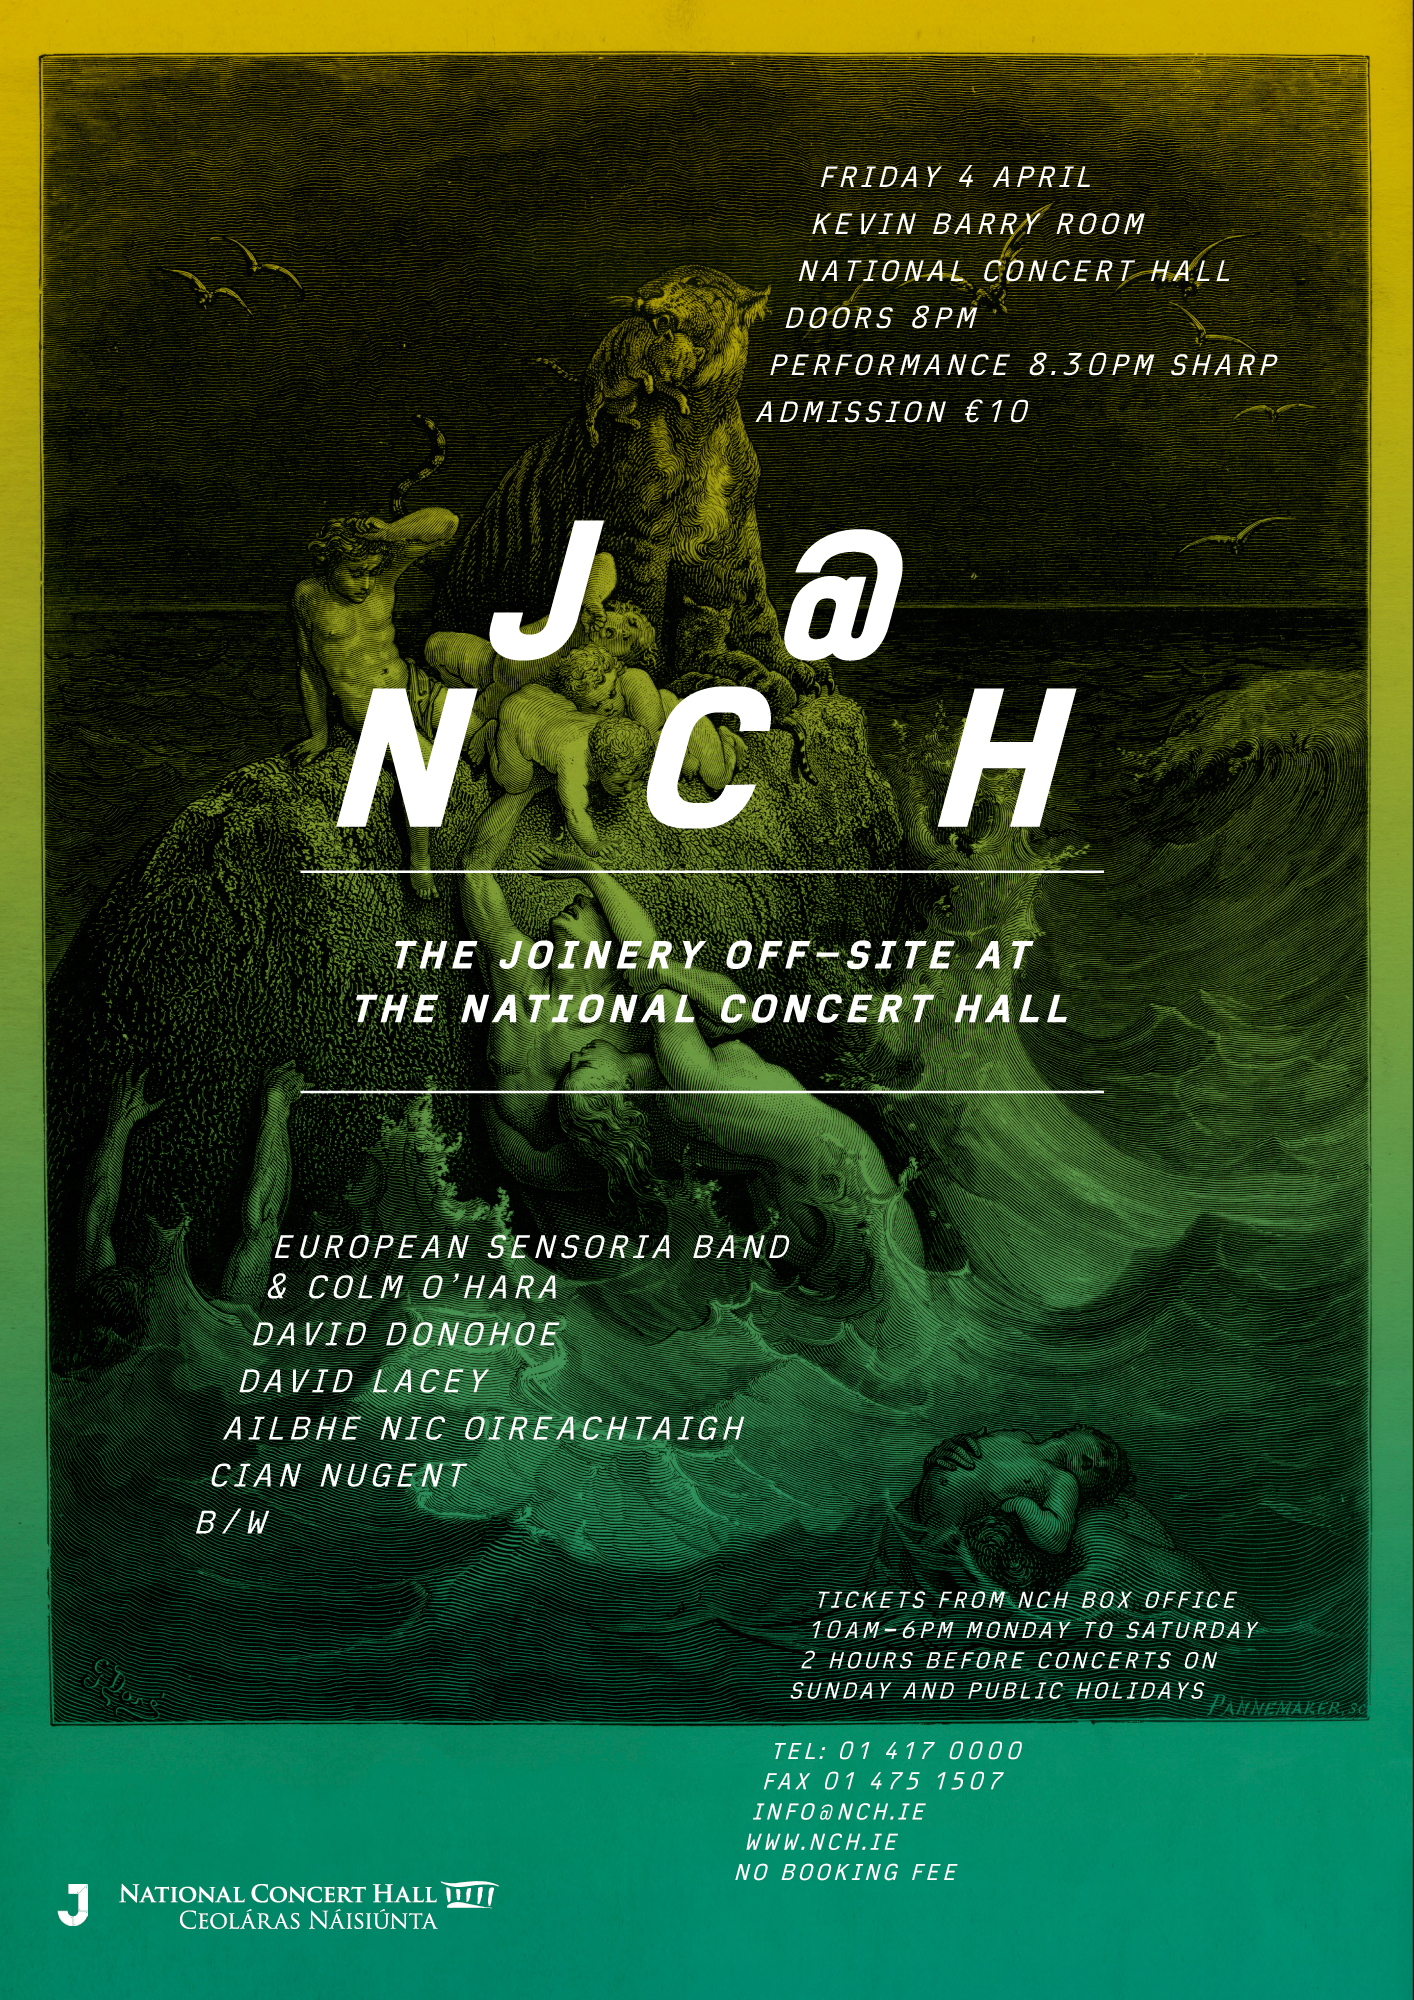 Cover image: J @ NCH (2014)